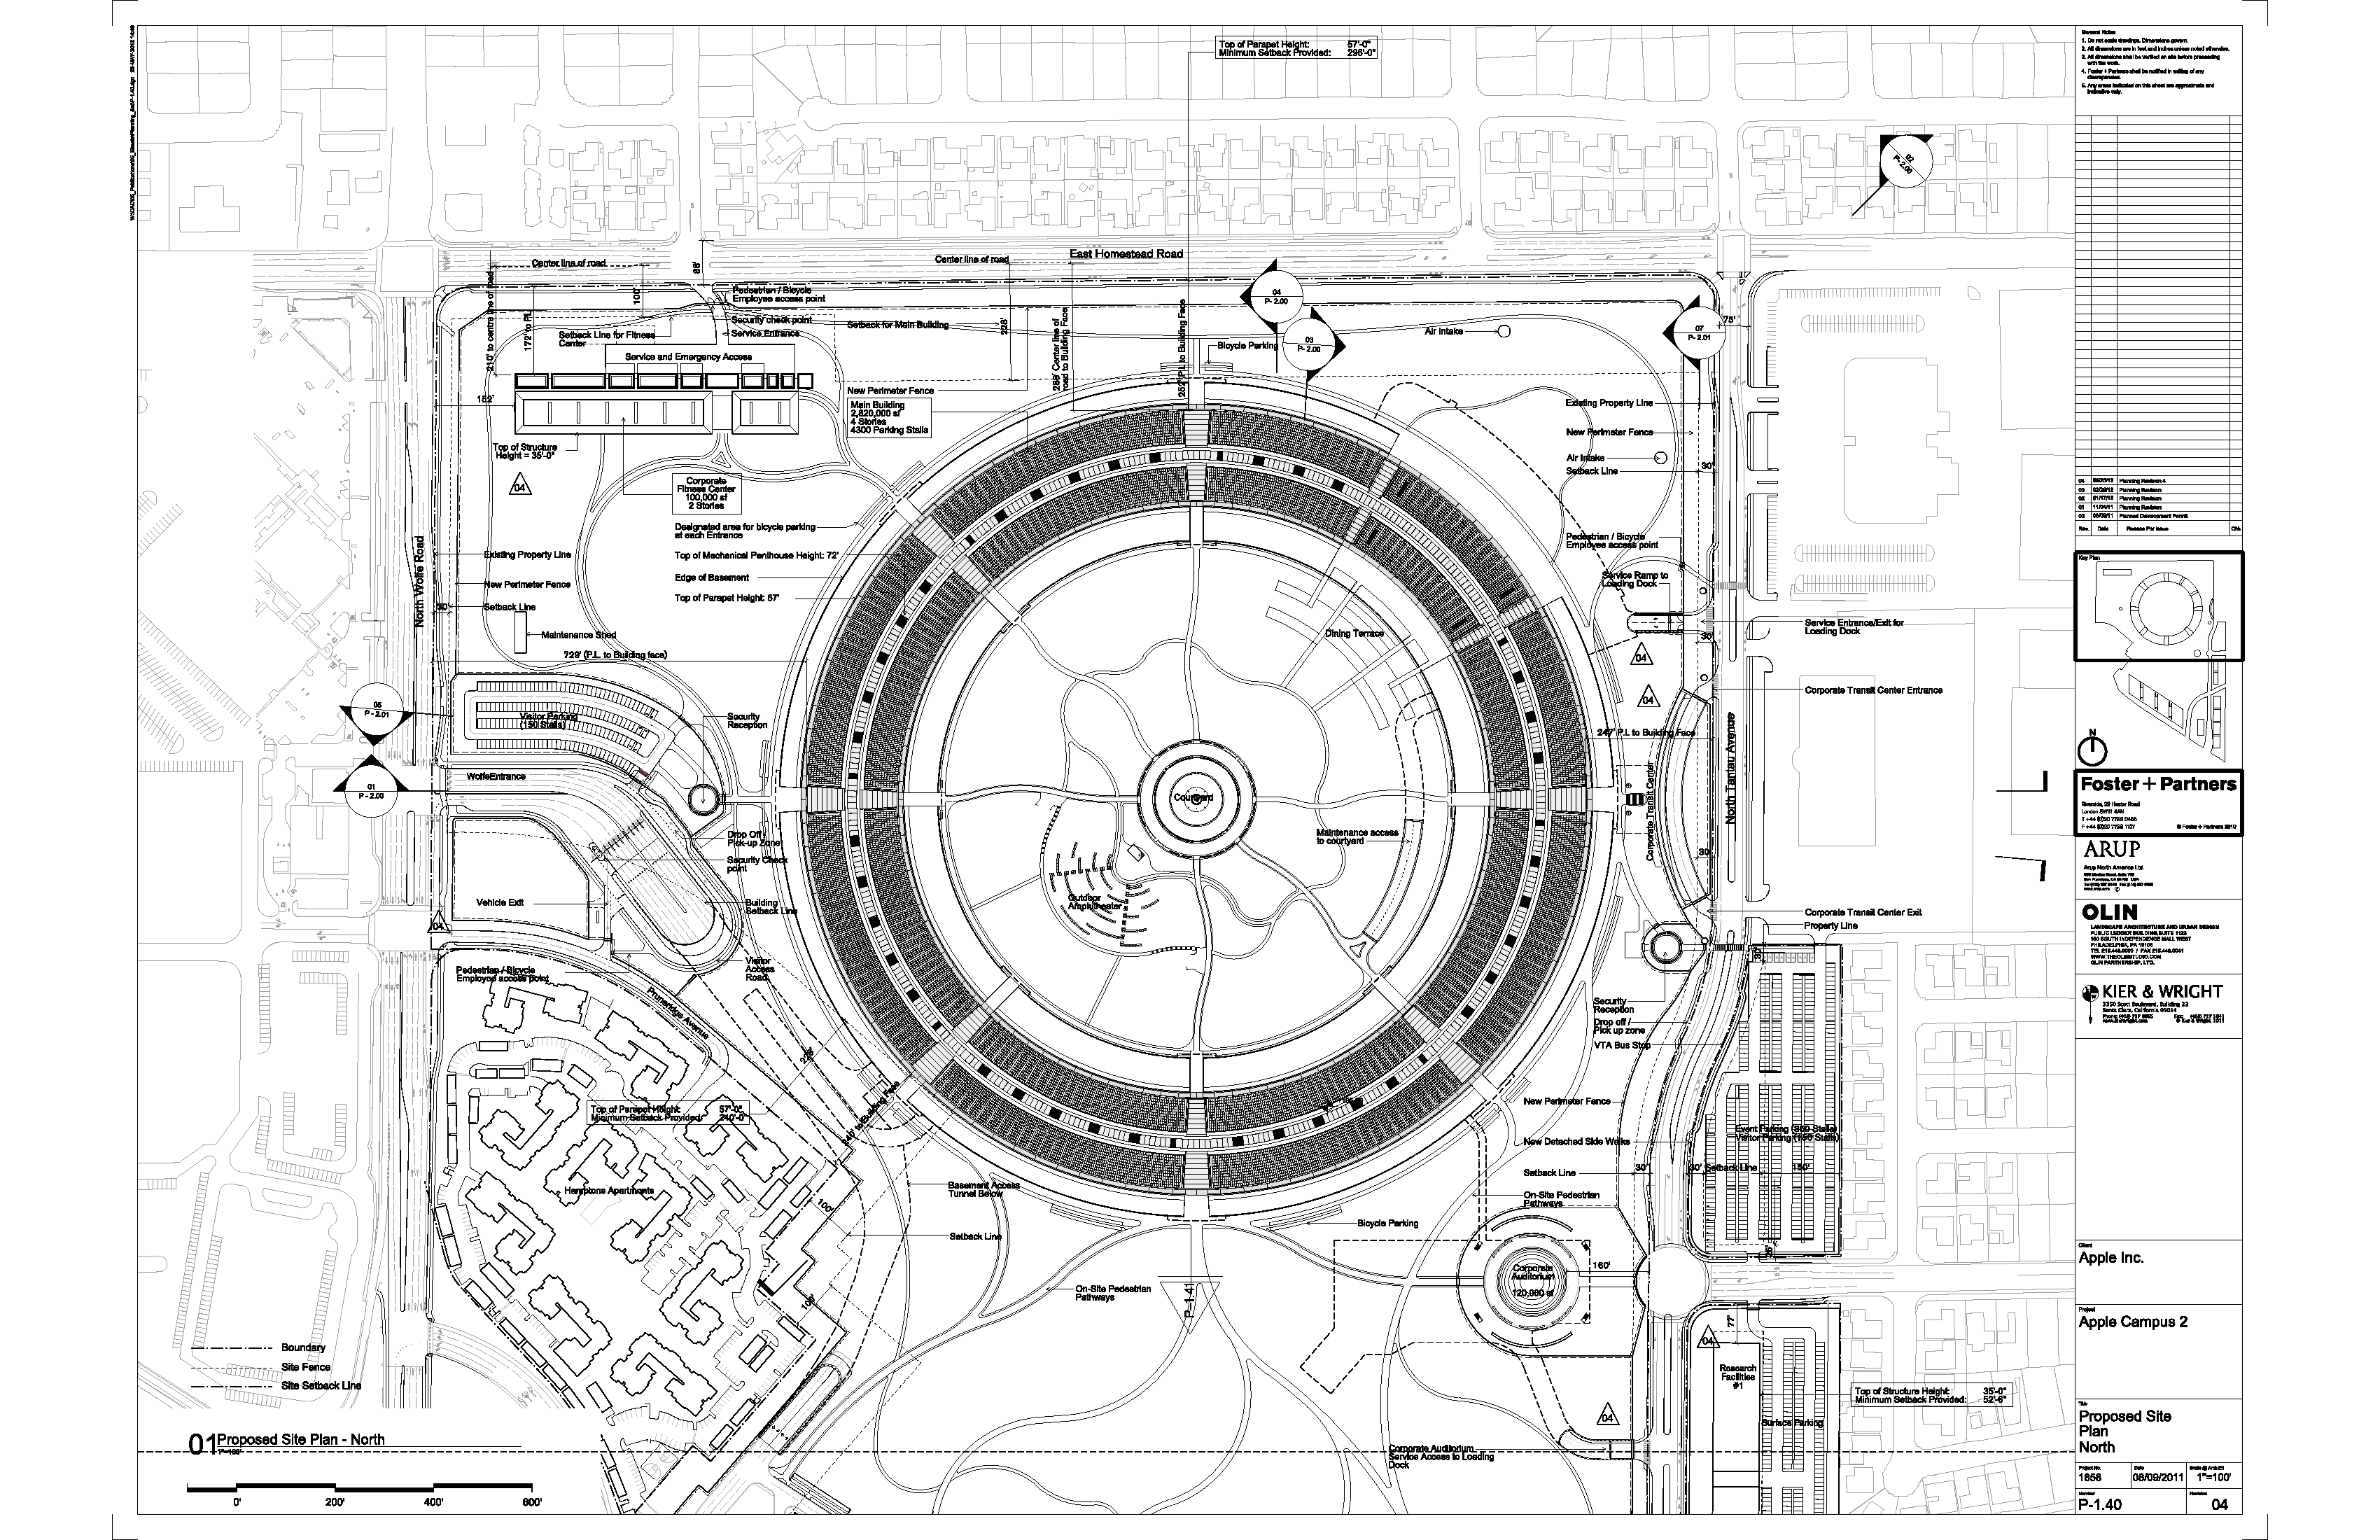 14 interesting facts about the new Apple campus